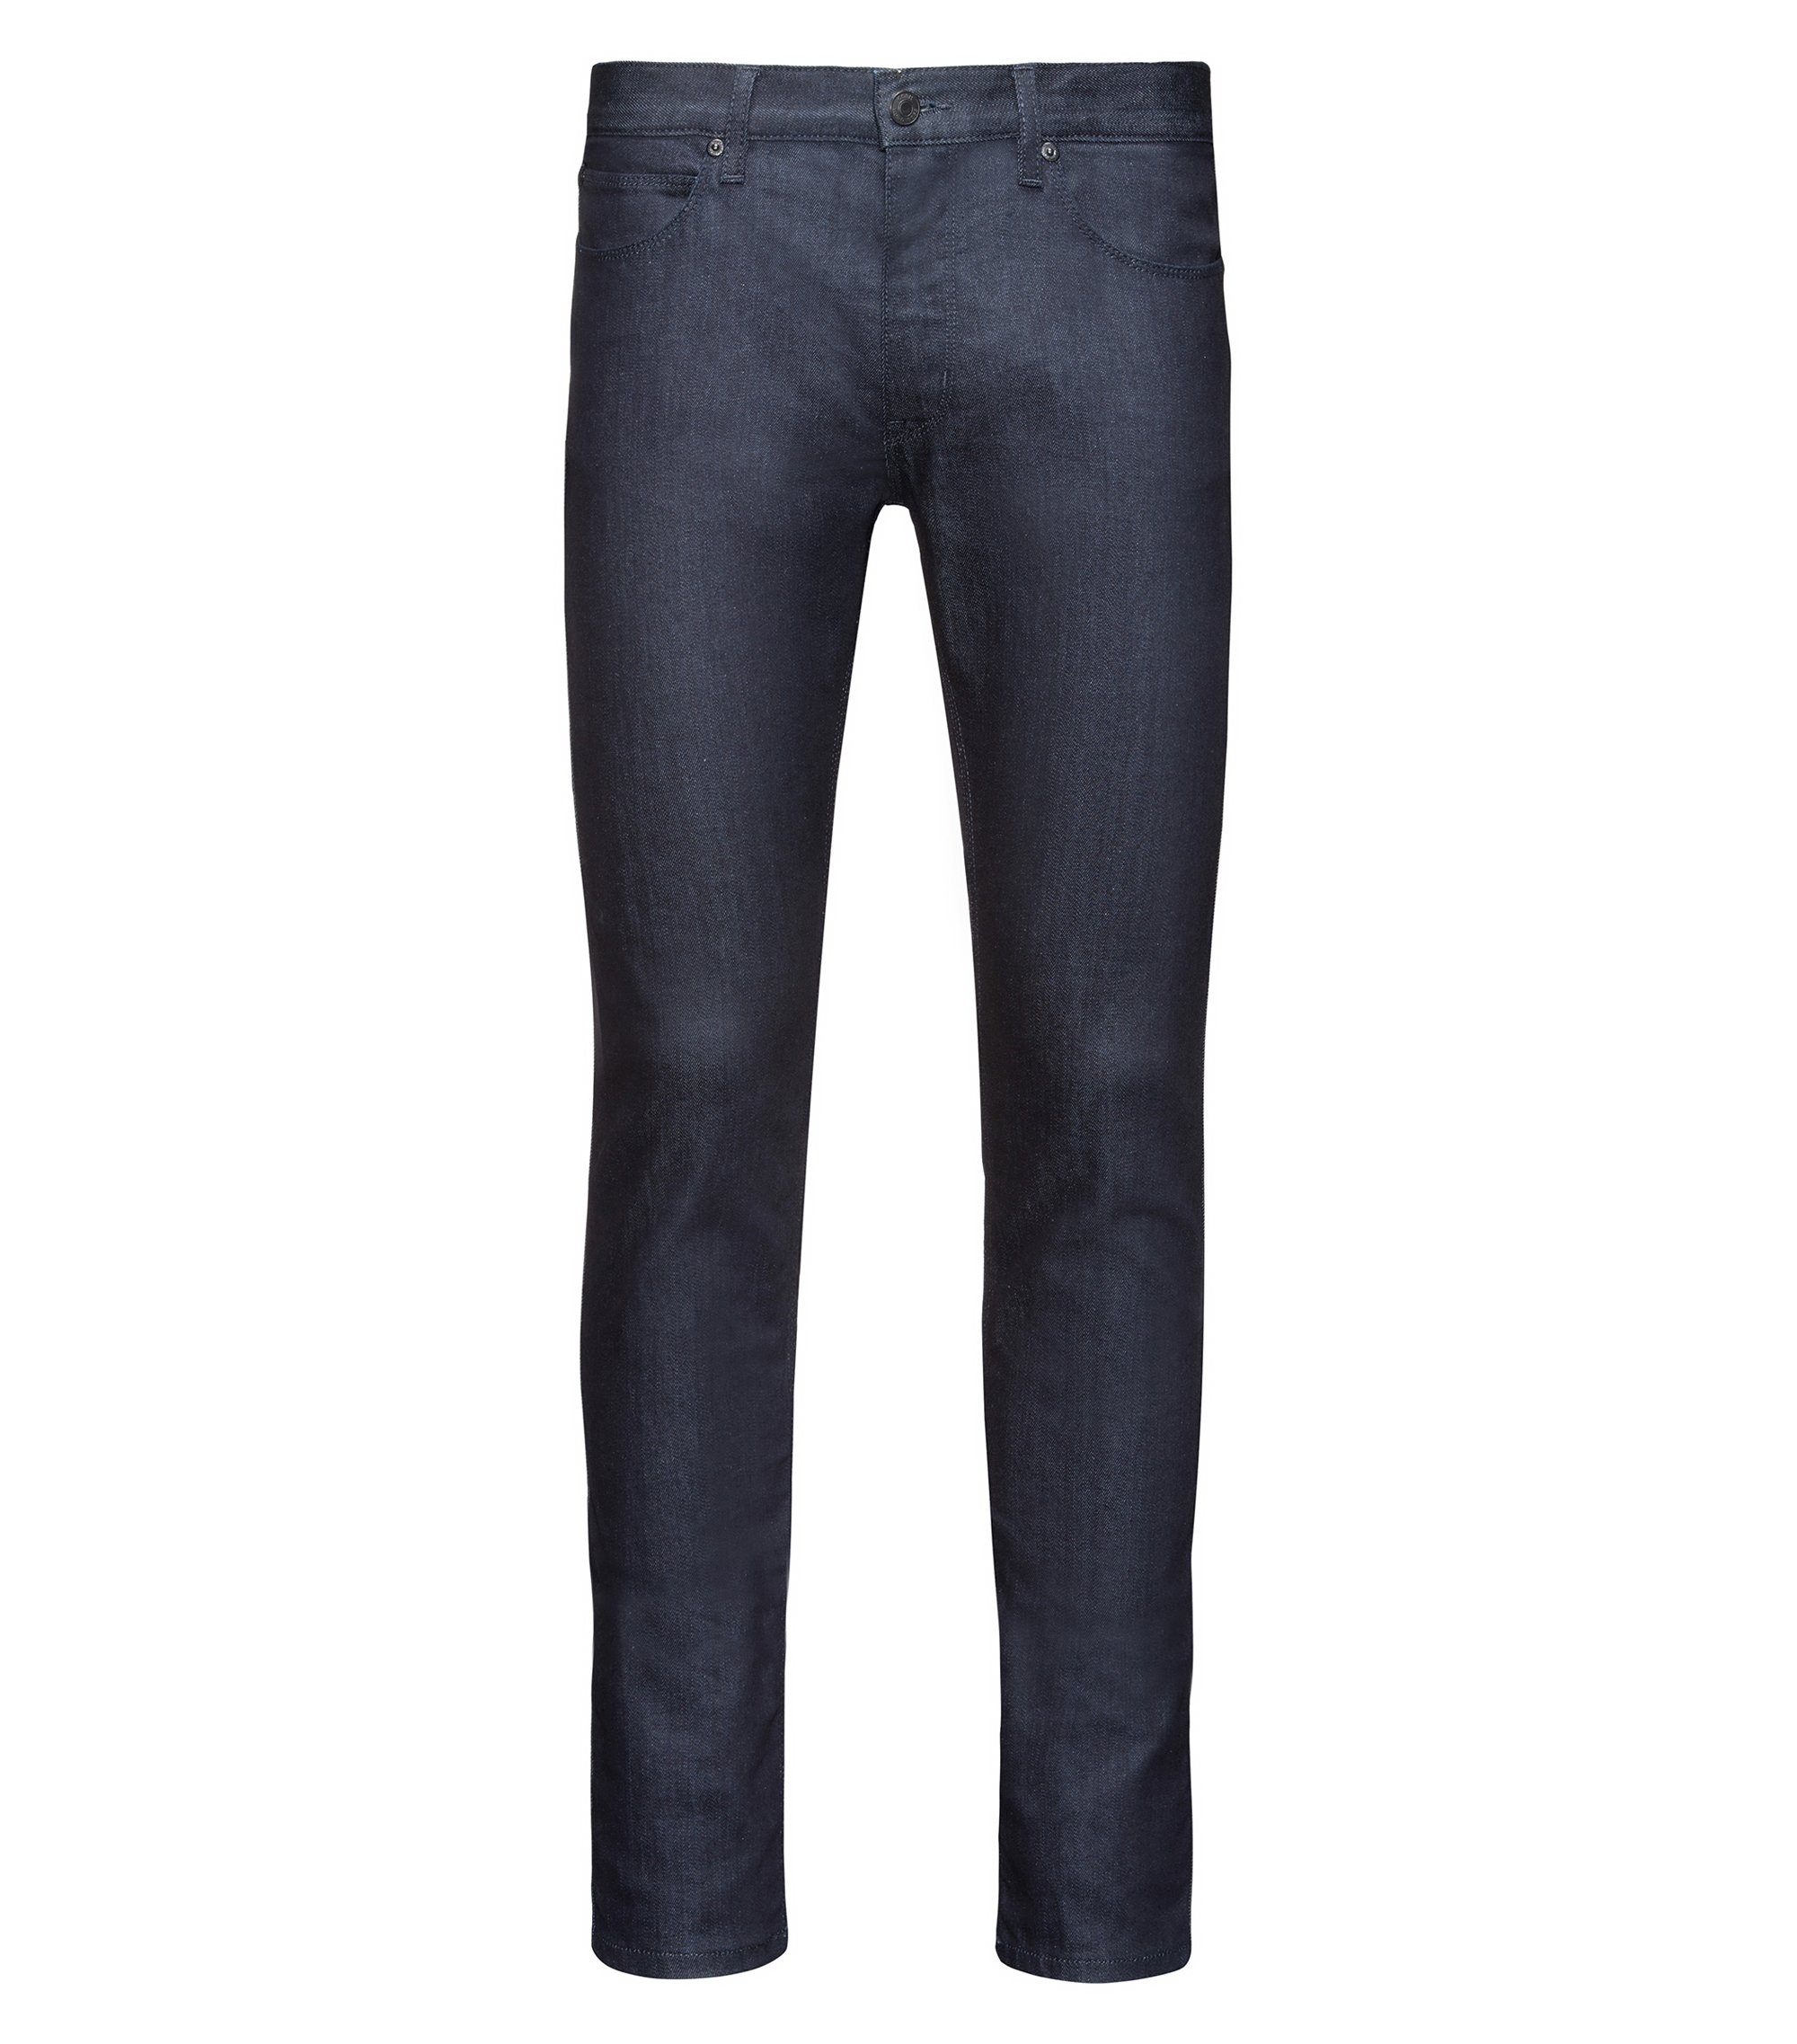 Jeans Skinny Fit taille basse en denim stretch stay-blue, Bleu foncé